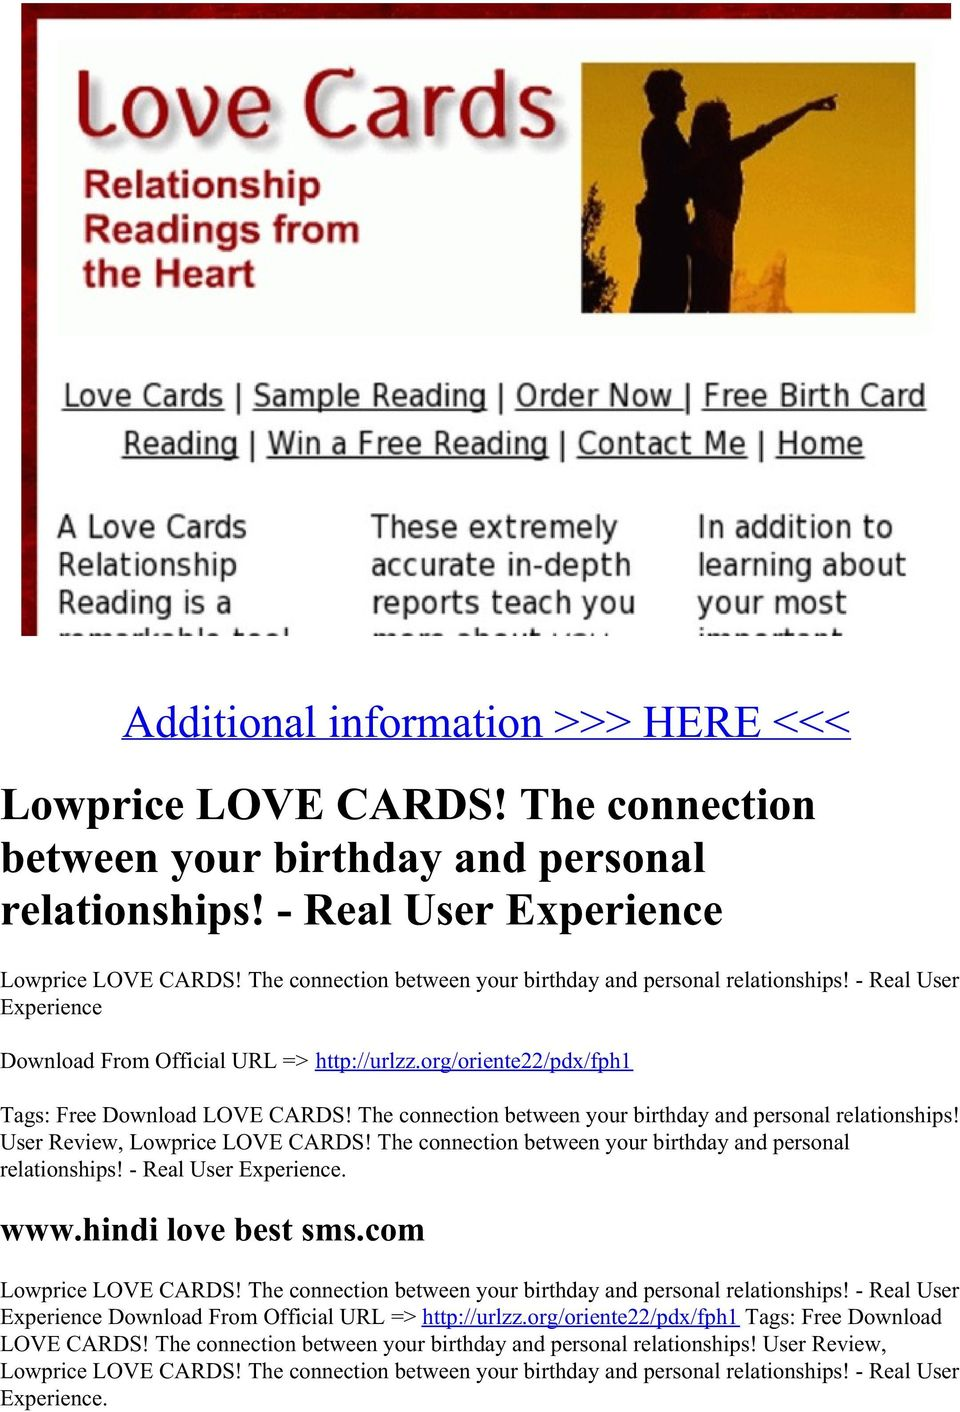 The connection between your birthday and personal relationships! User Review, Lowprice LOVE CARDS! The connection between your birthday and personal relationships!